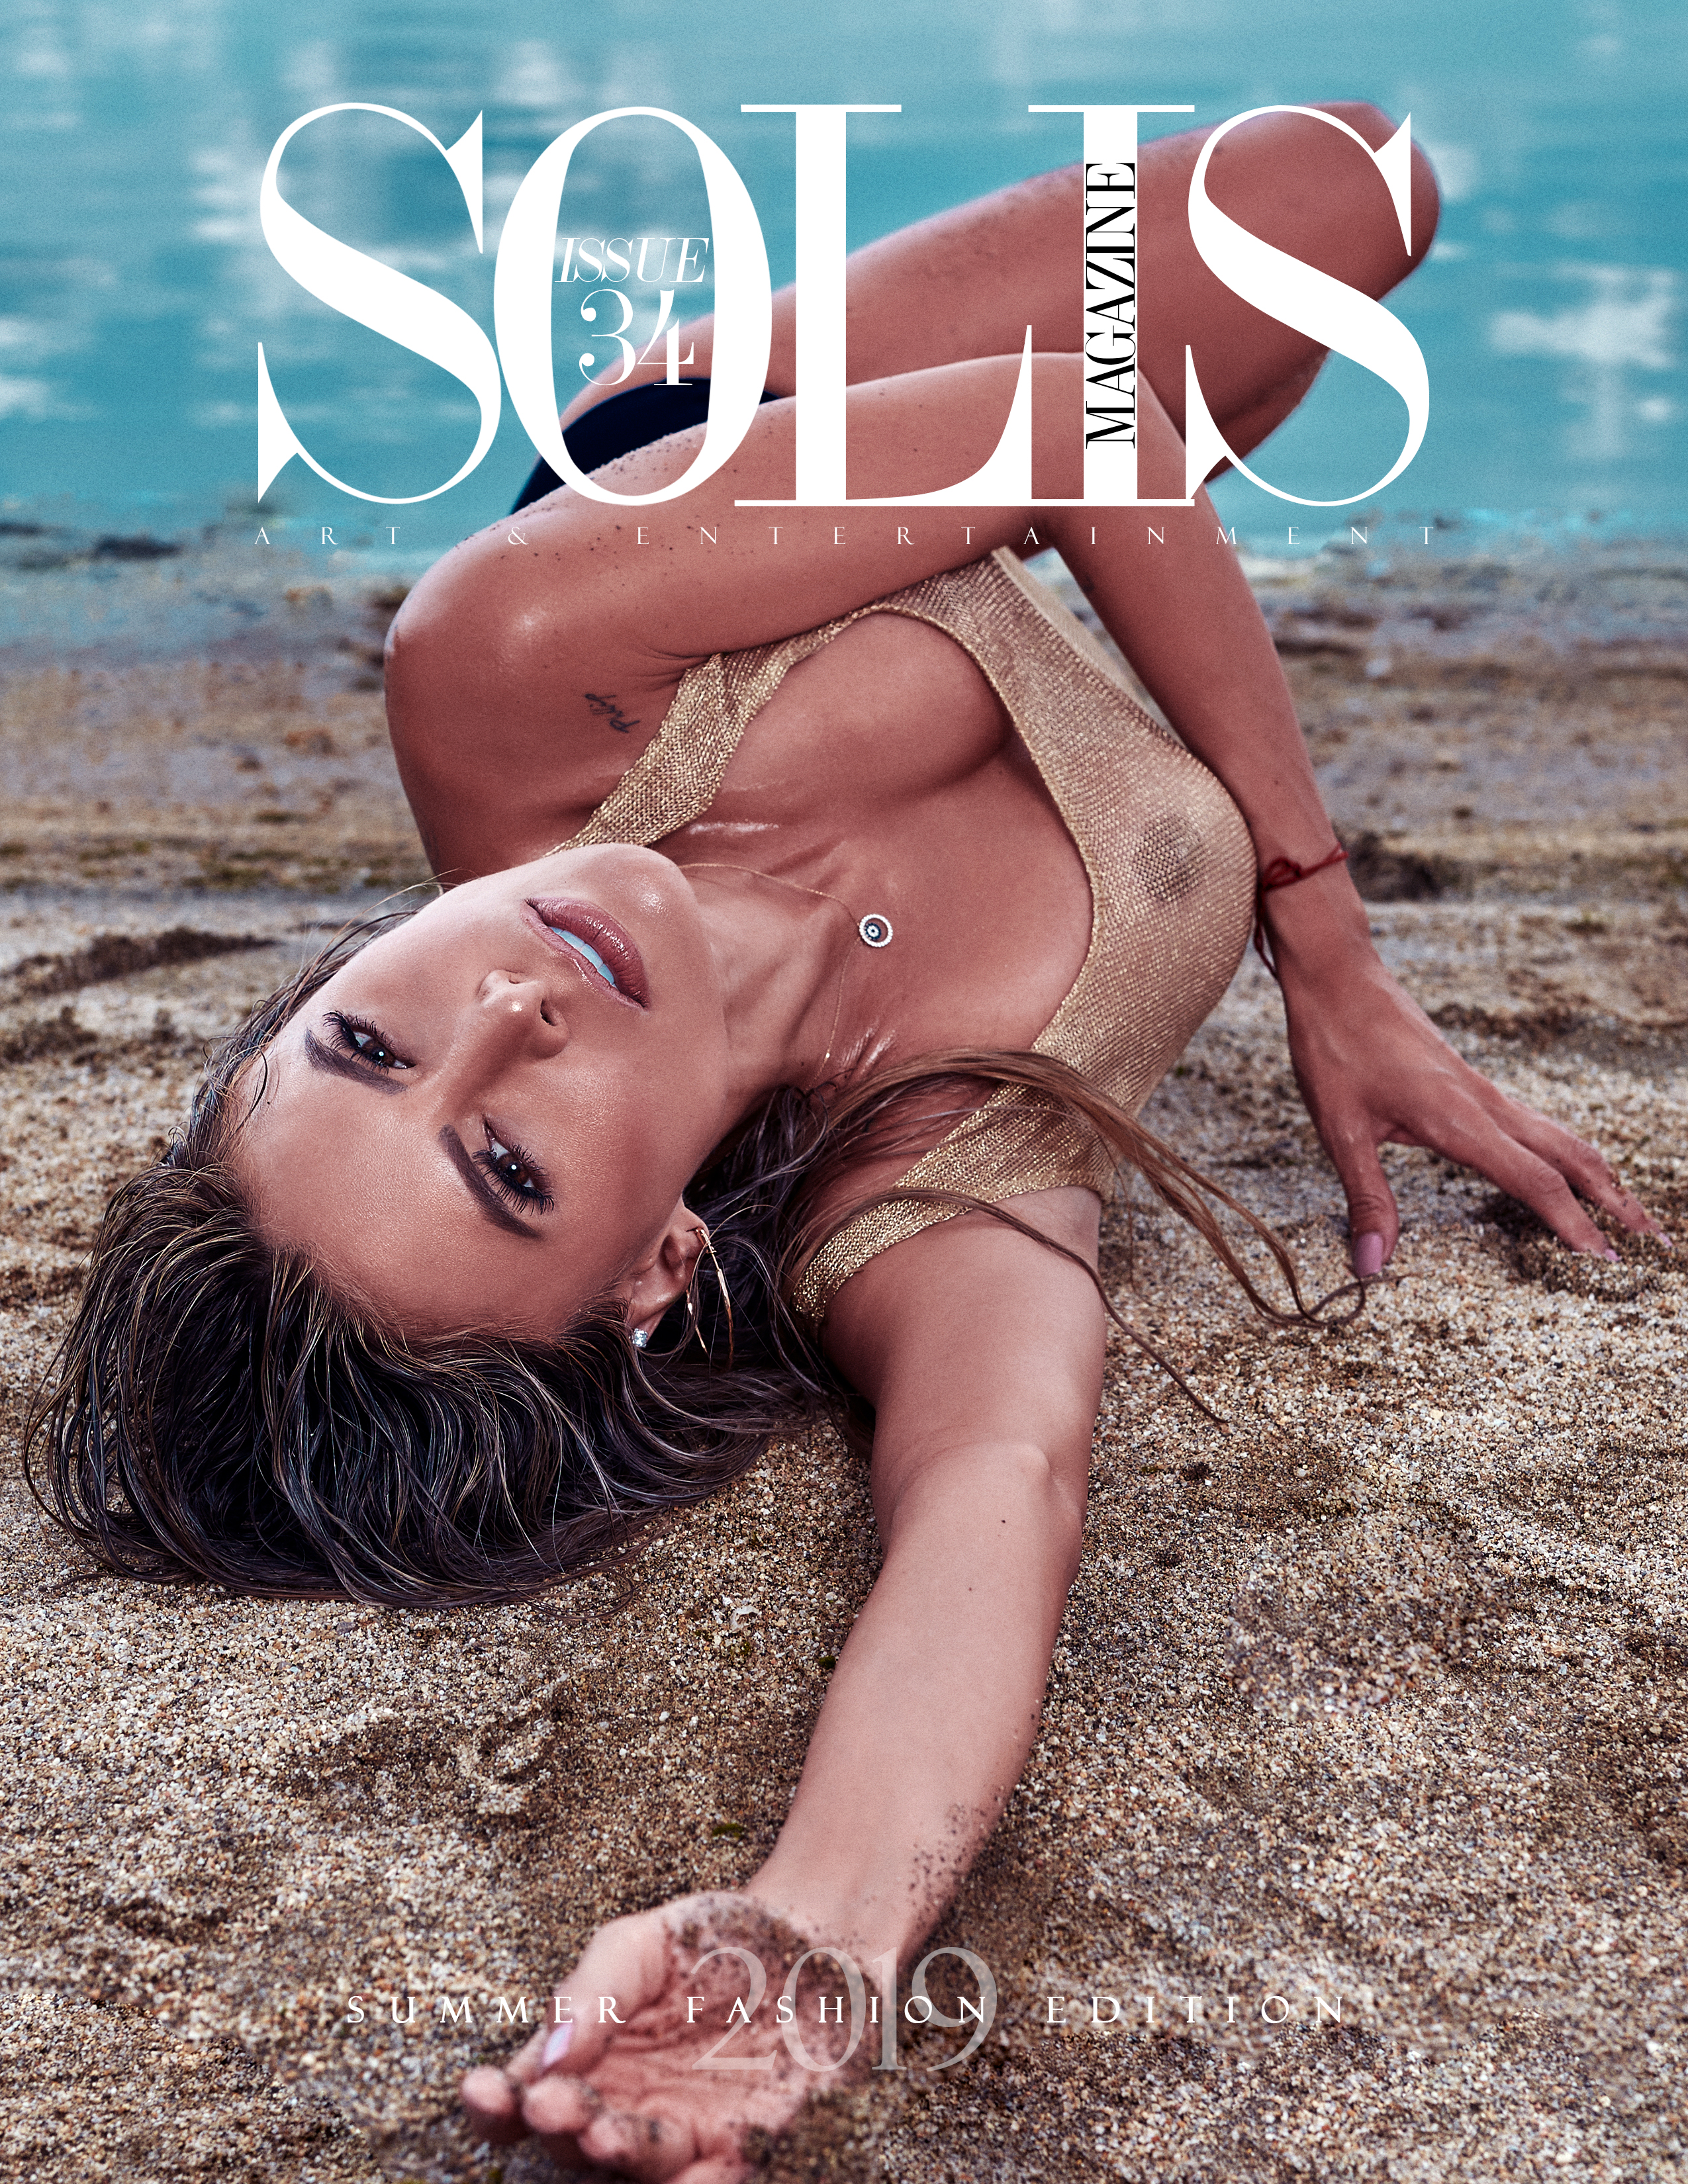 Solis Magazine Issue 34 - Summer Fashion Edition 2019 Cover